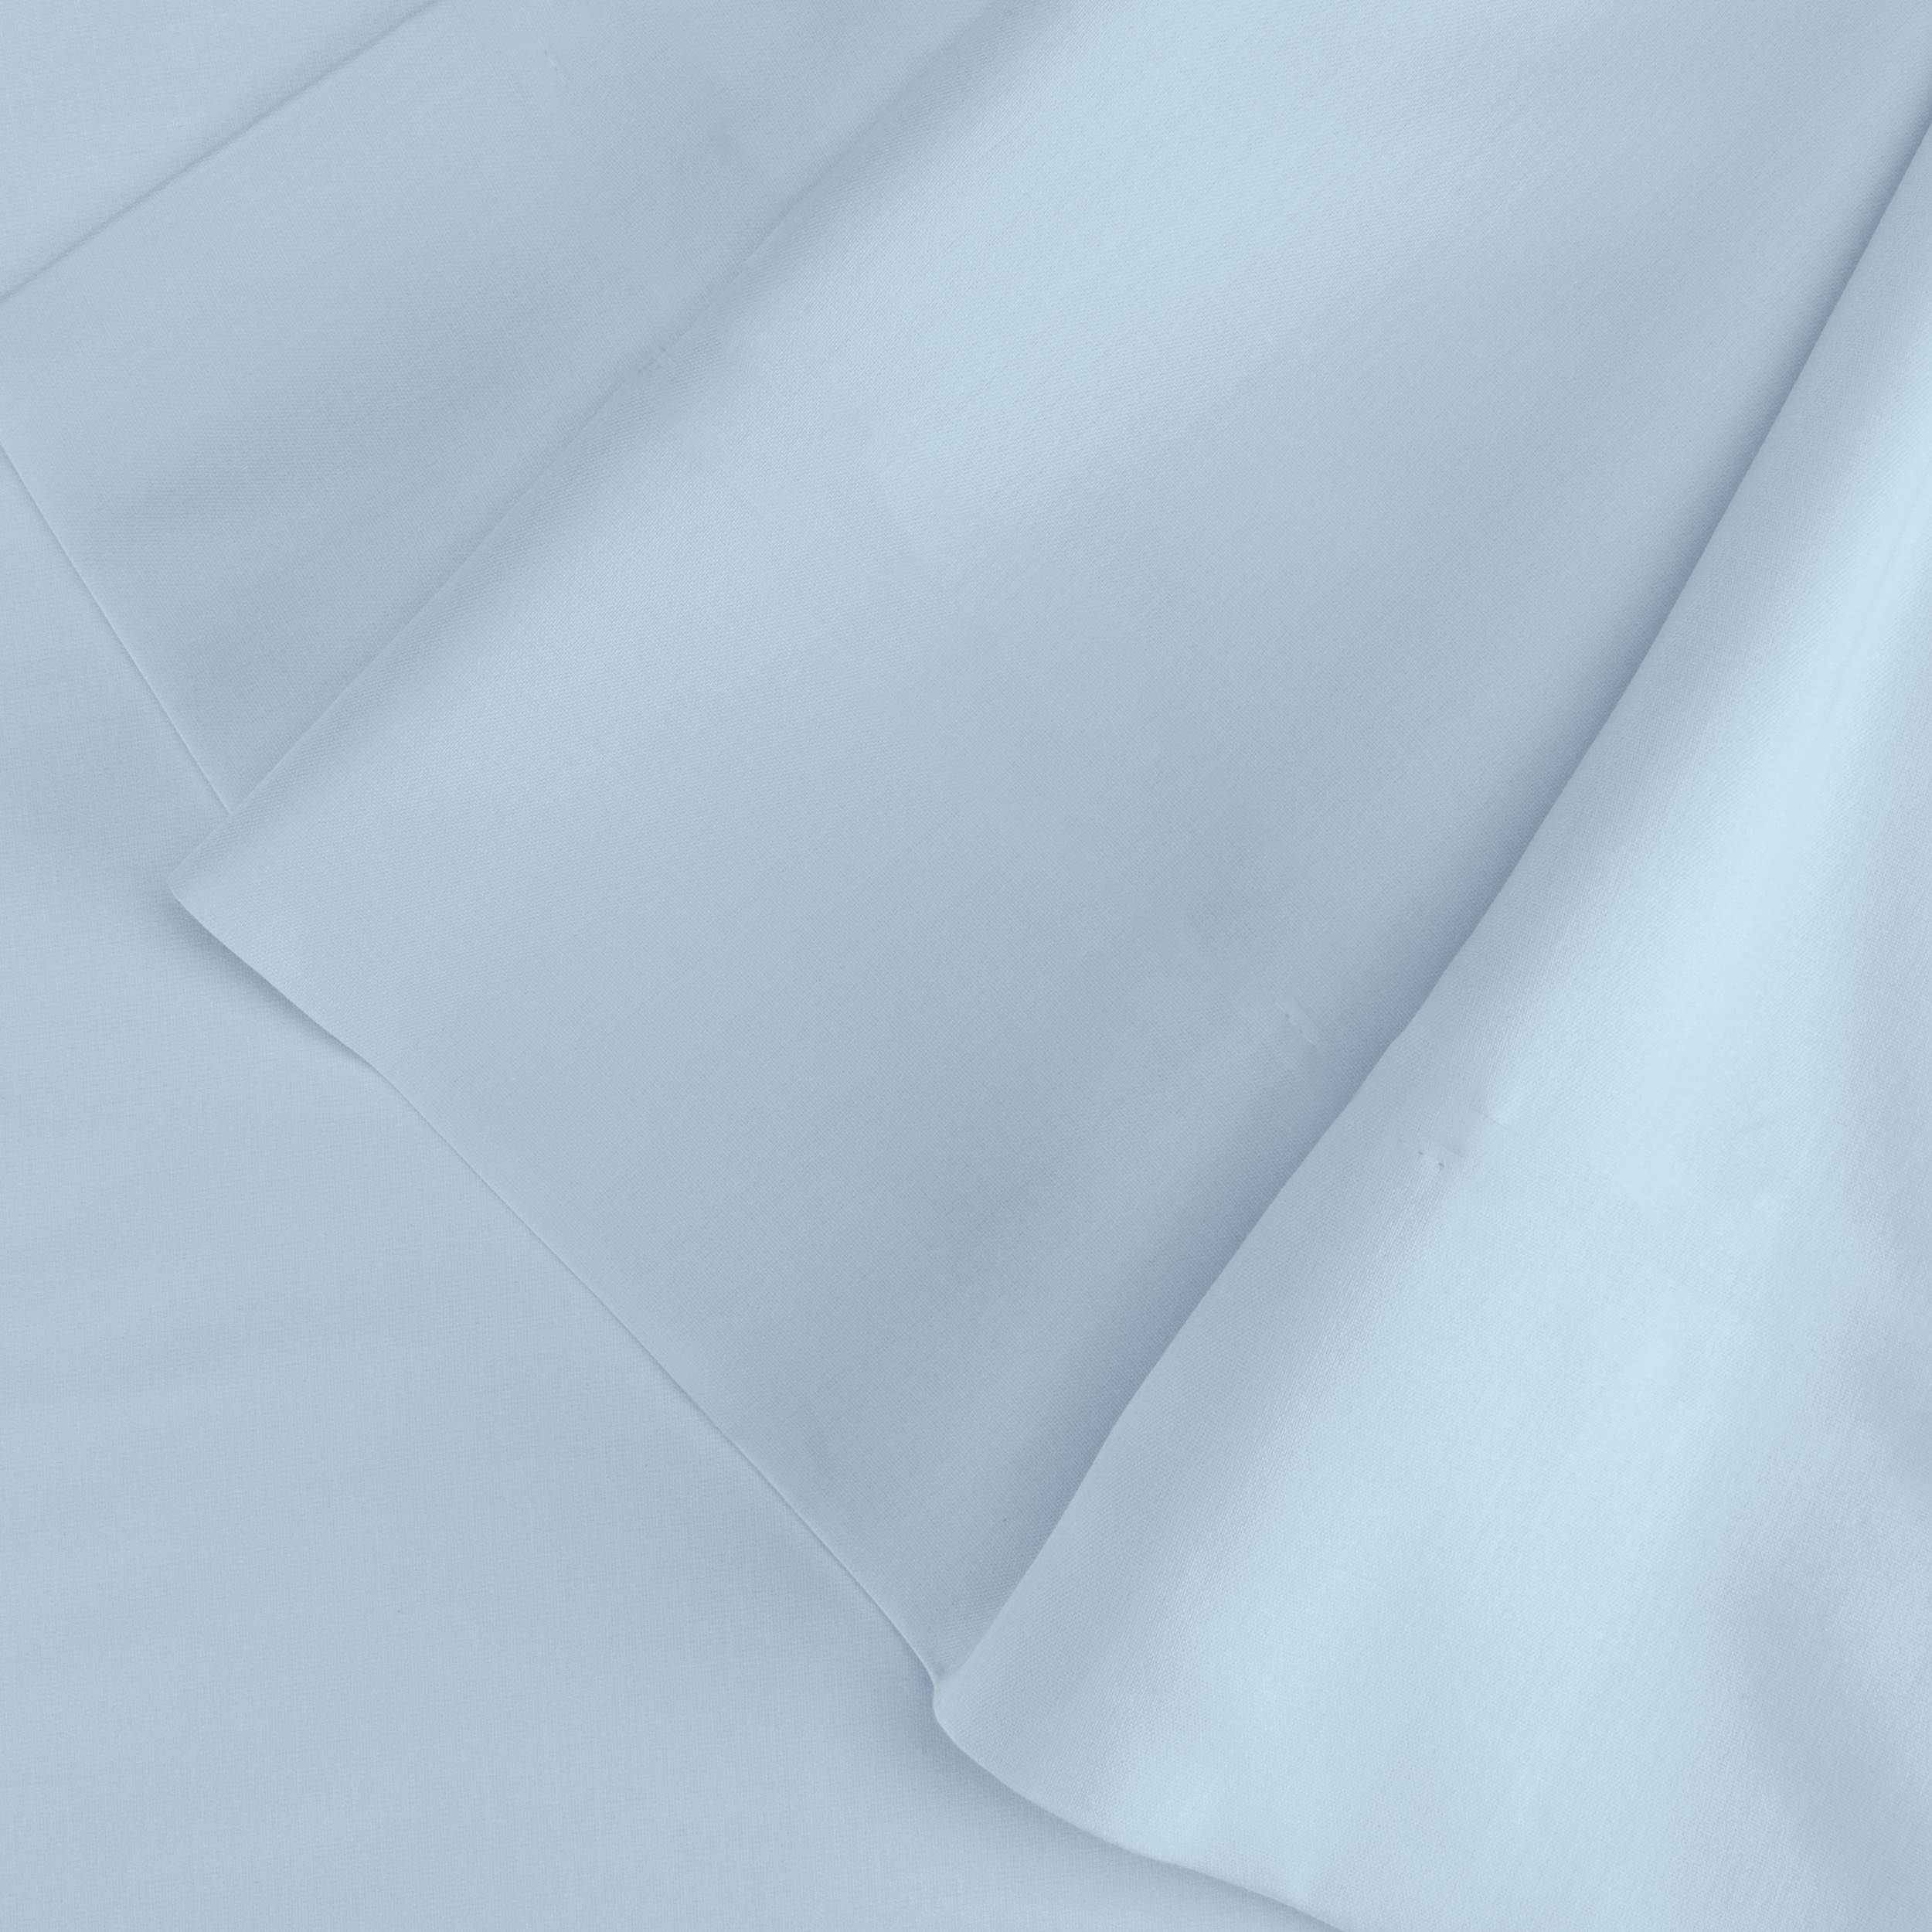 Highest Rated Bed Sheets Soft Sheet Set With Deep Pocket Cotton Rich 15 Colors Ebay